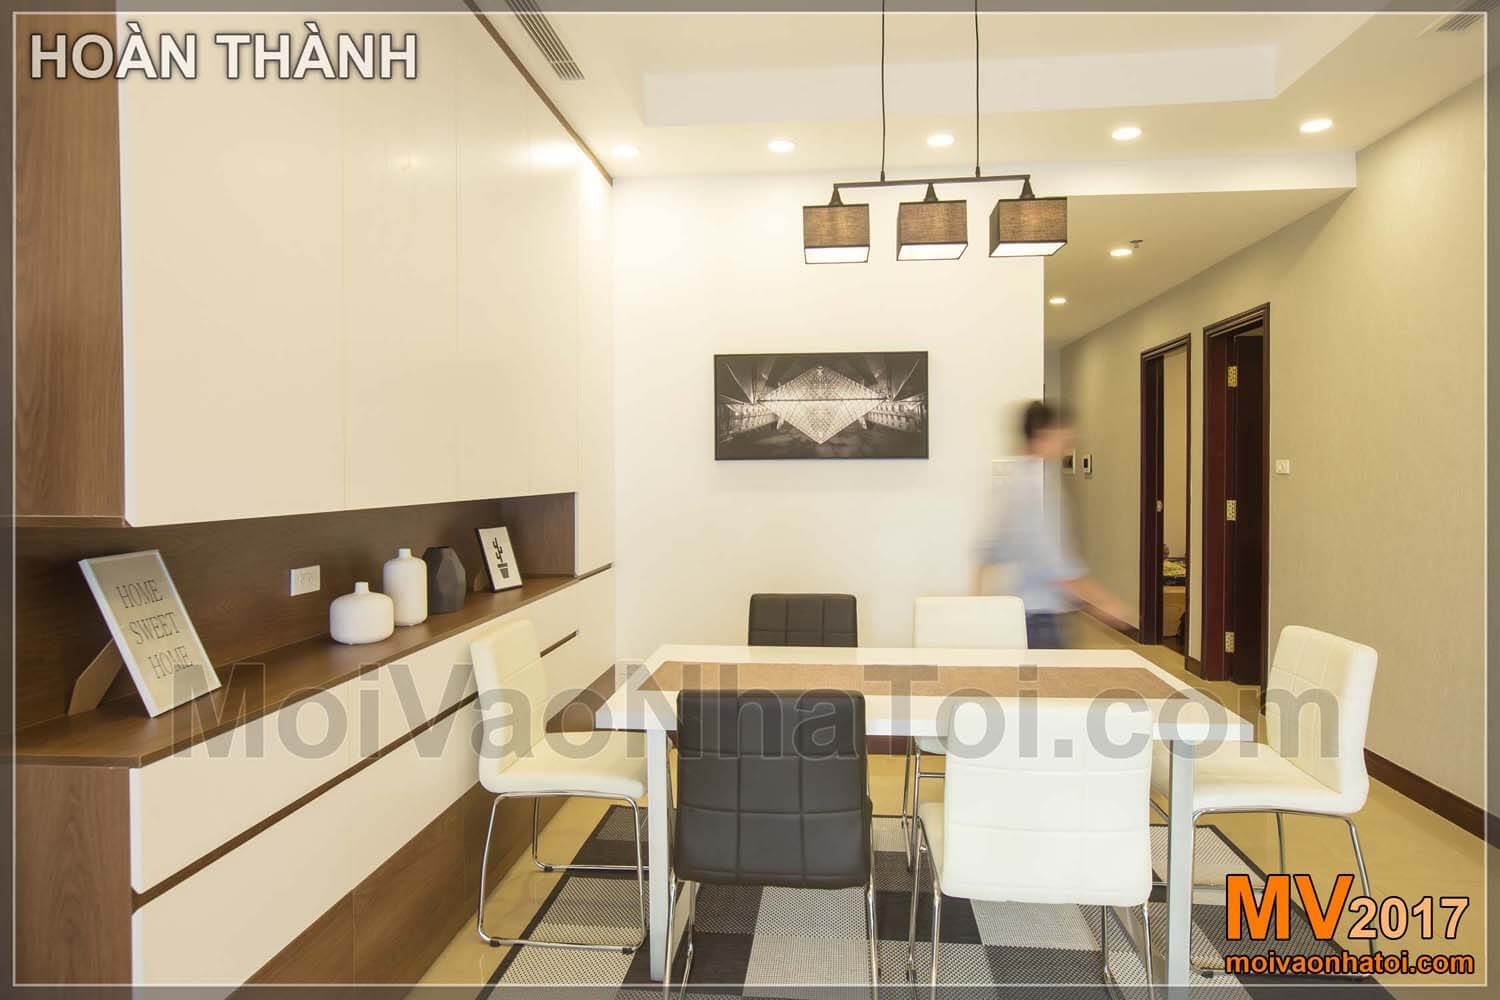 Design dining room Royal city apartment 100m2